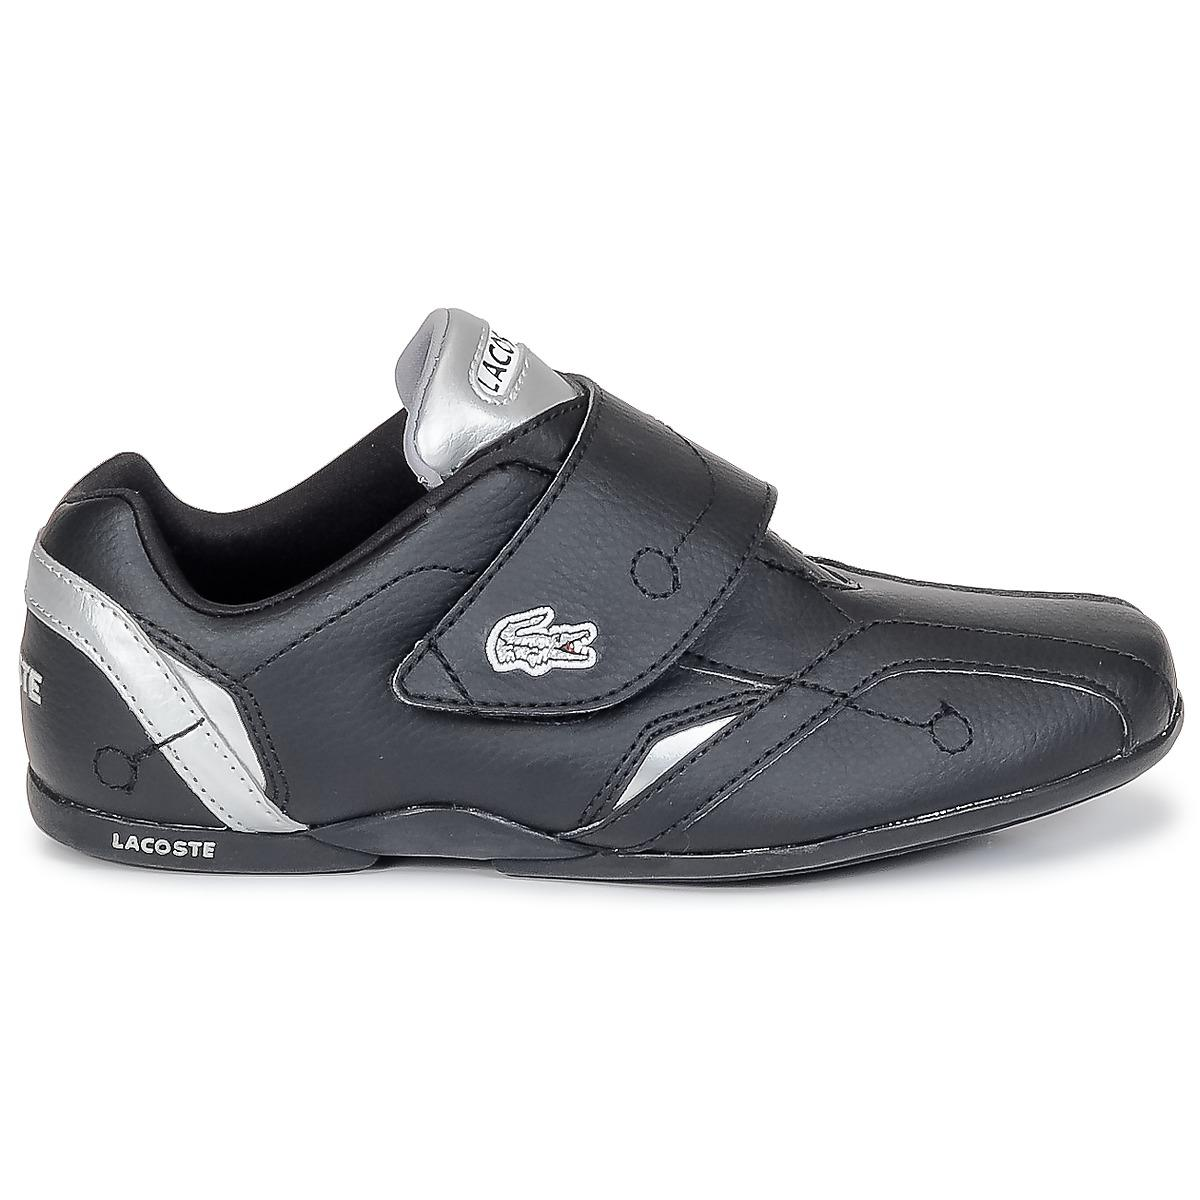 422bcd71d Lacoste - Protect Gt Women s Shoes (trainers) In Black - Lyst. View  fullscreen